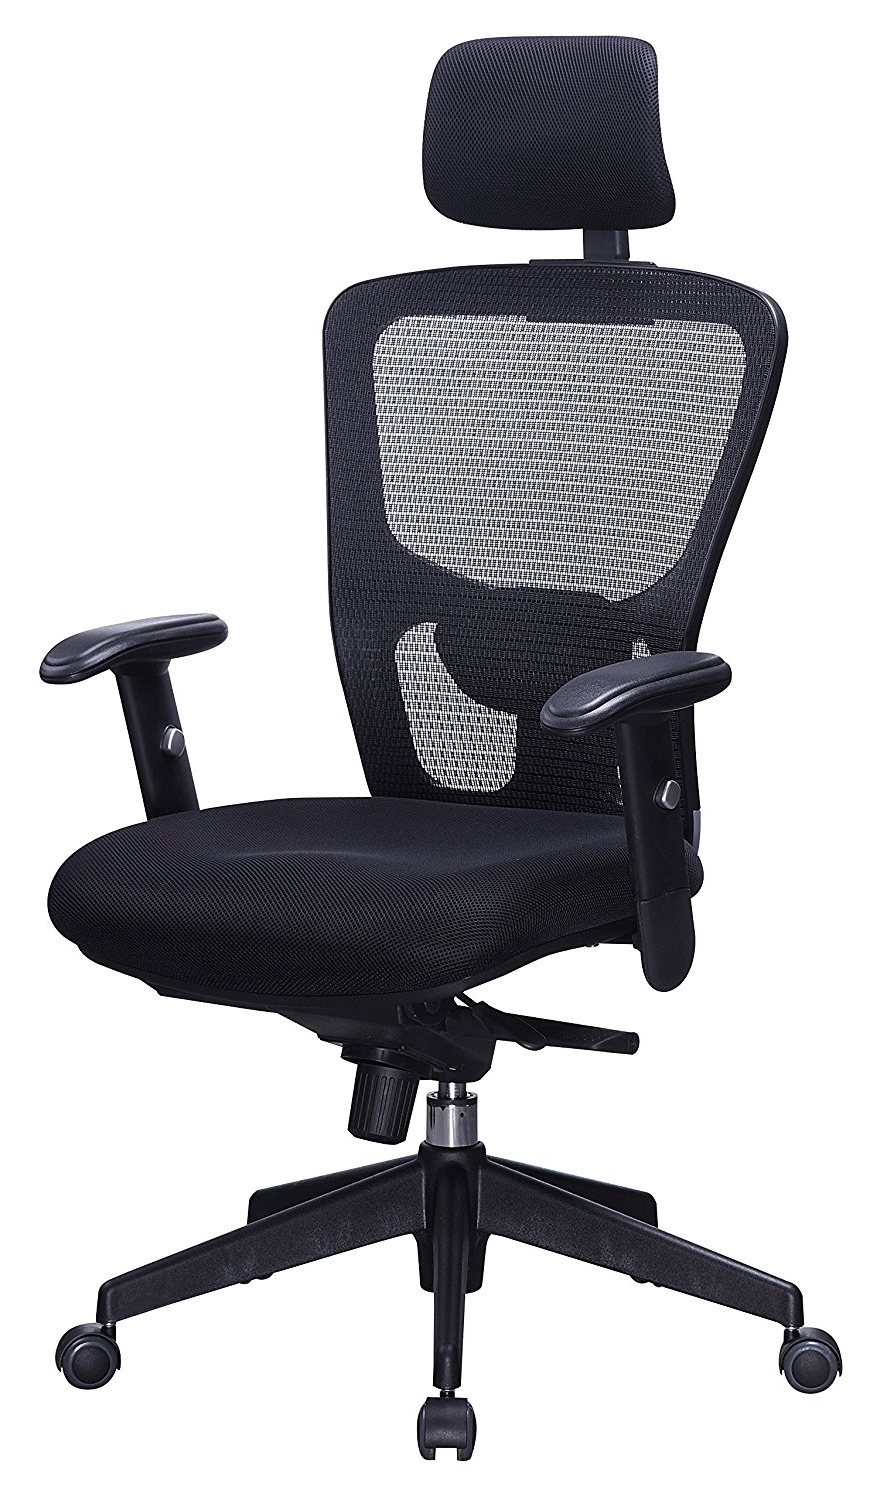 Current 10 Best Ergonomic Chairs For Neck Pain – Think Home Office Pertaining To Executive Office Chairs With Back Support (View 6 of 20)